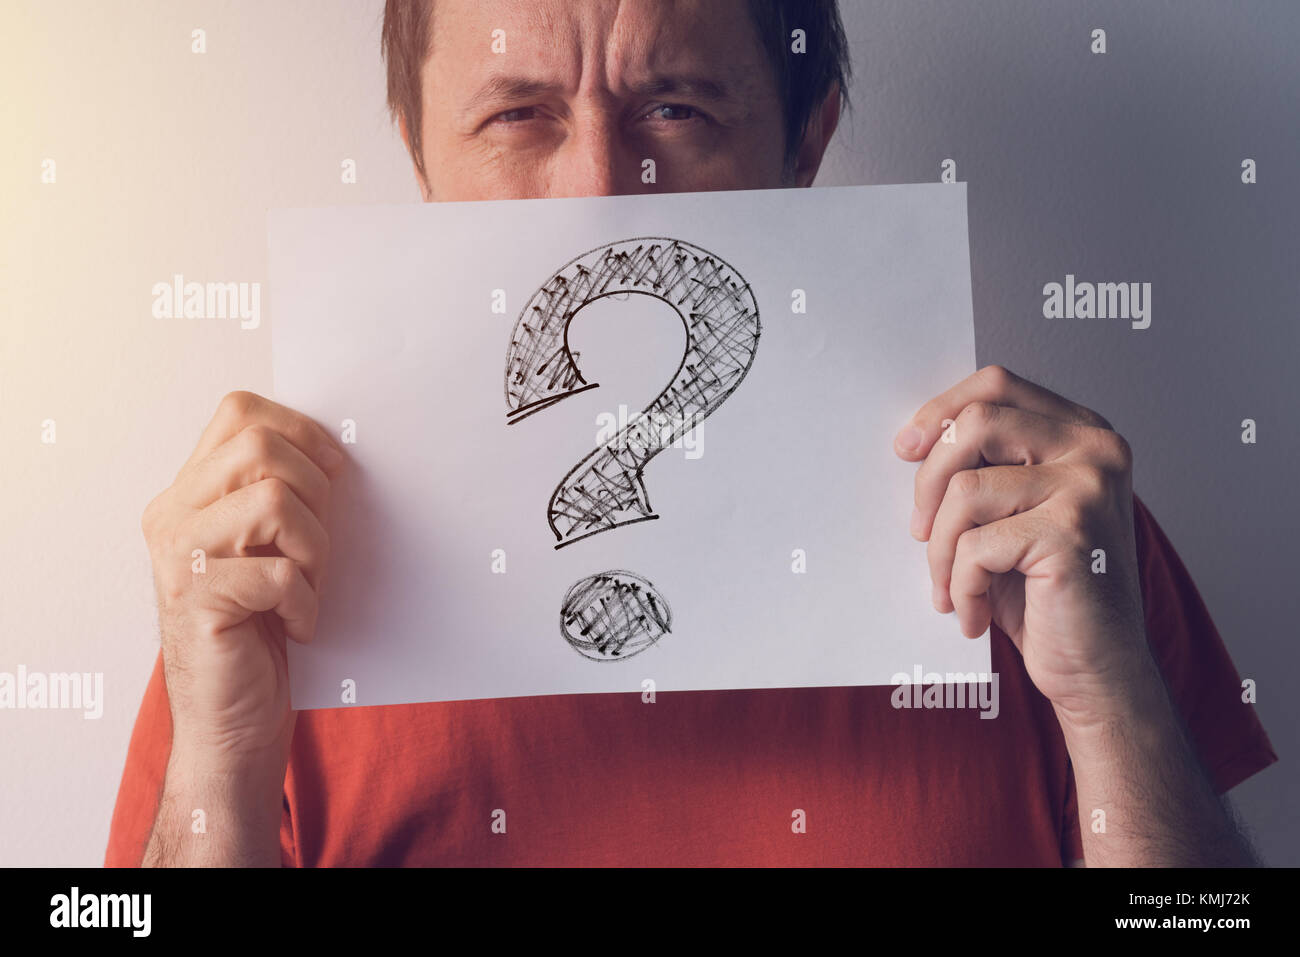 Question mark, looking for answers. Man holding paper with scribbled interrogation point, query, or eroteme punctuation - Stock Image